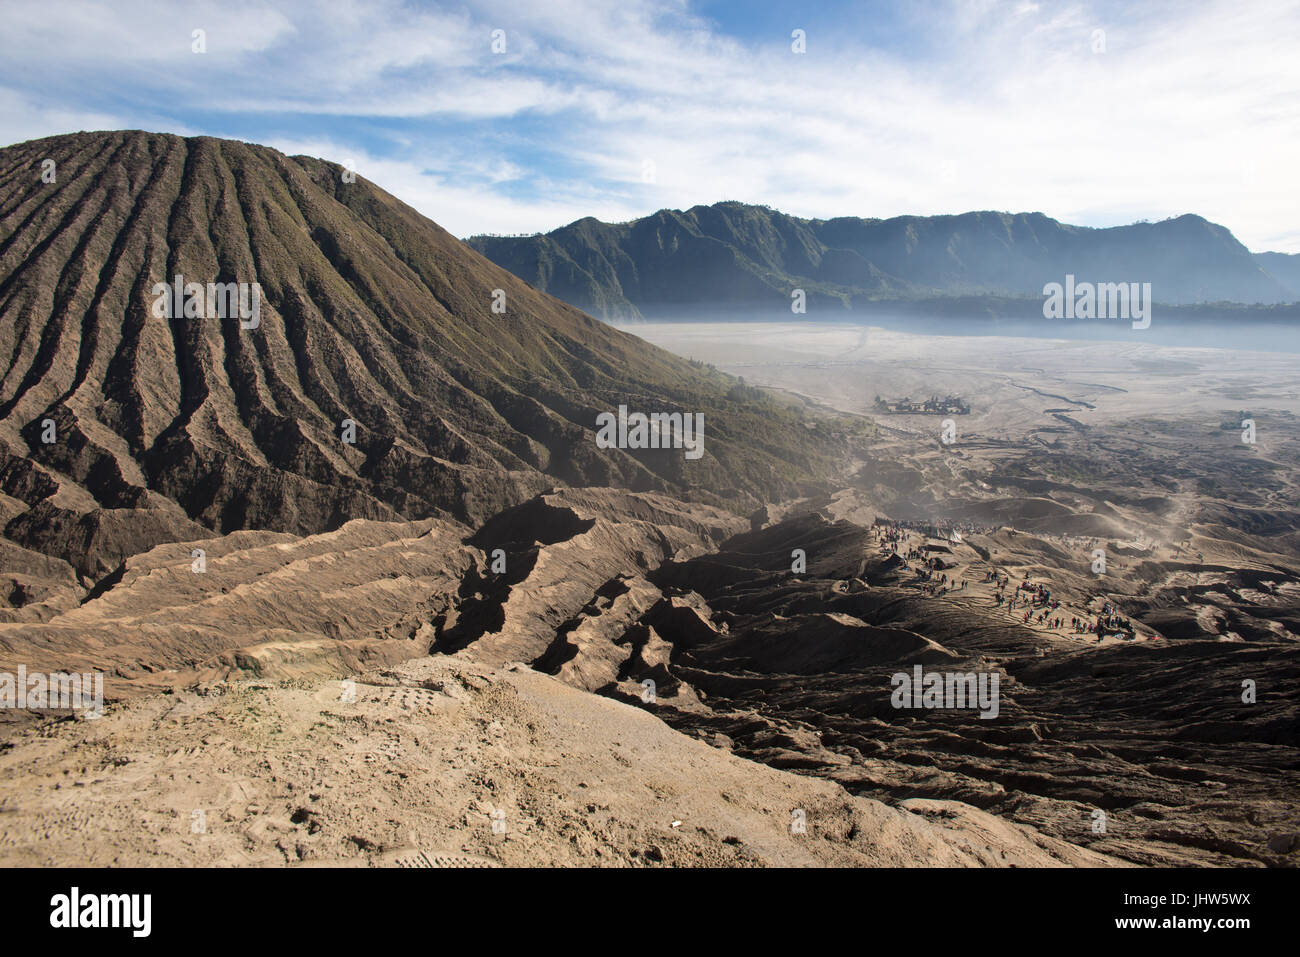 Aerial view of caldeira of Mount Bromo from the crater, East Java INdonesia. - Stock Image